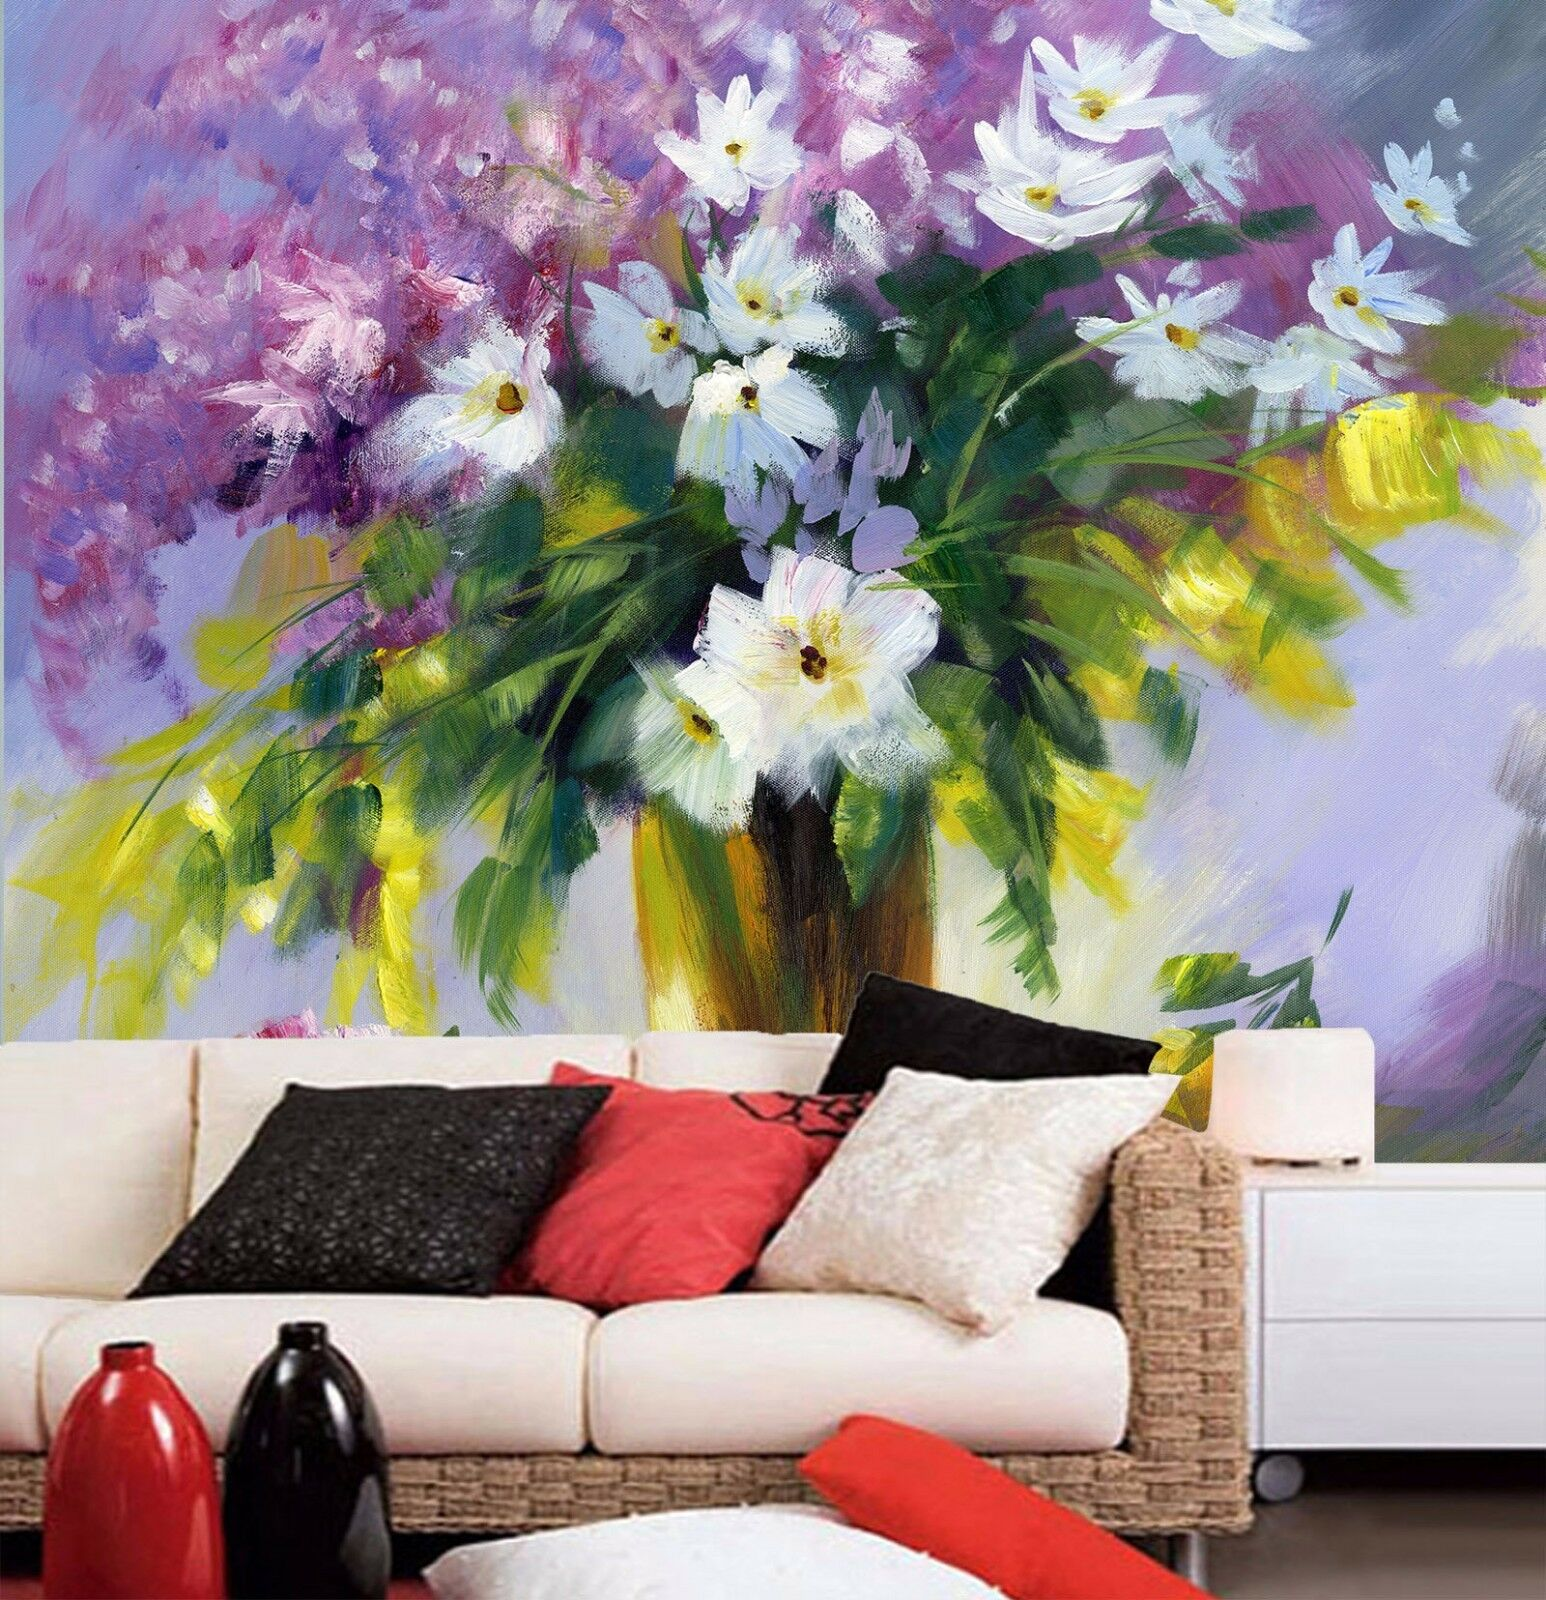 3D Impression Flower Art 6638 Wall Paper Wall Print Decal Wall AJ WALLPAPER CA